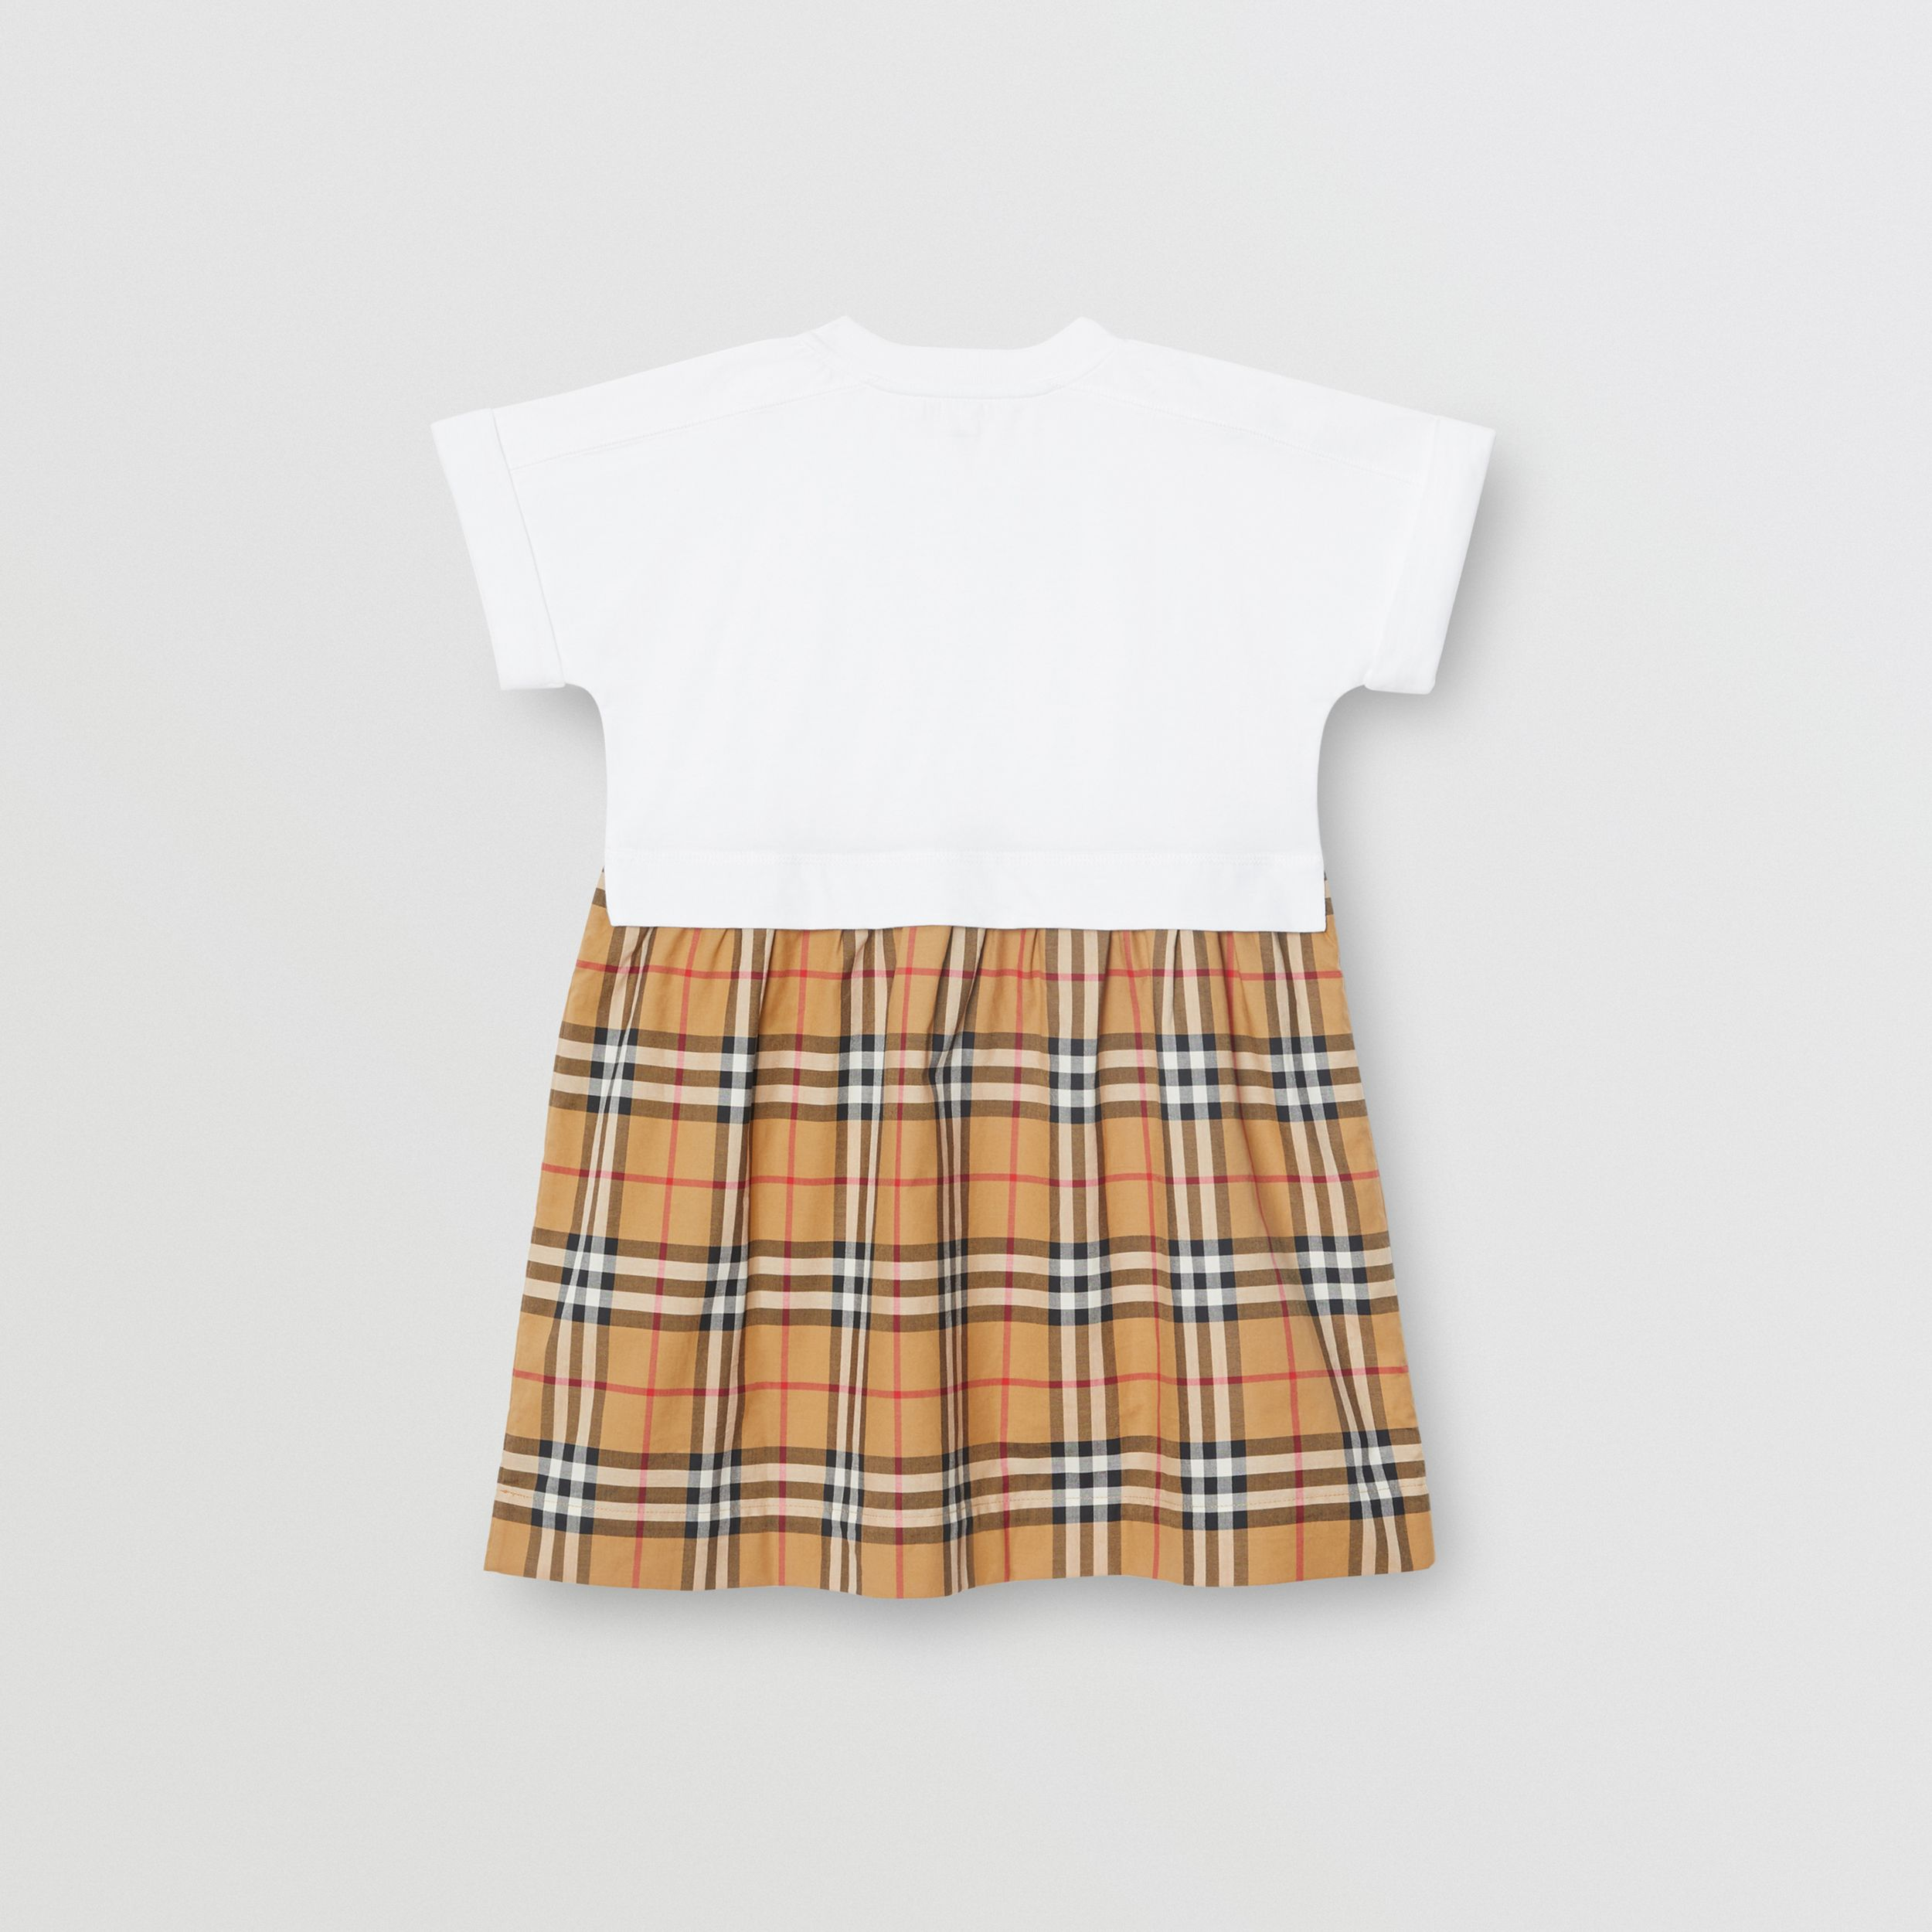 Vintage Check Cotton Dress in White | Burberry - 4